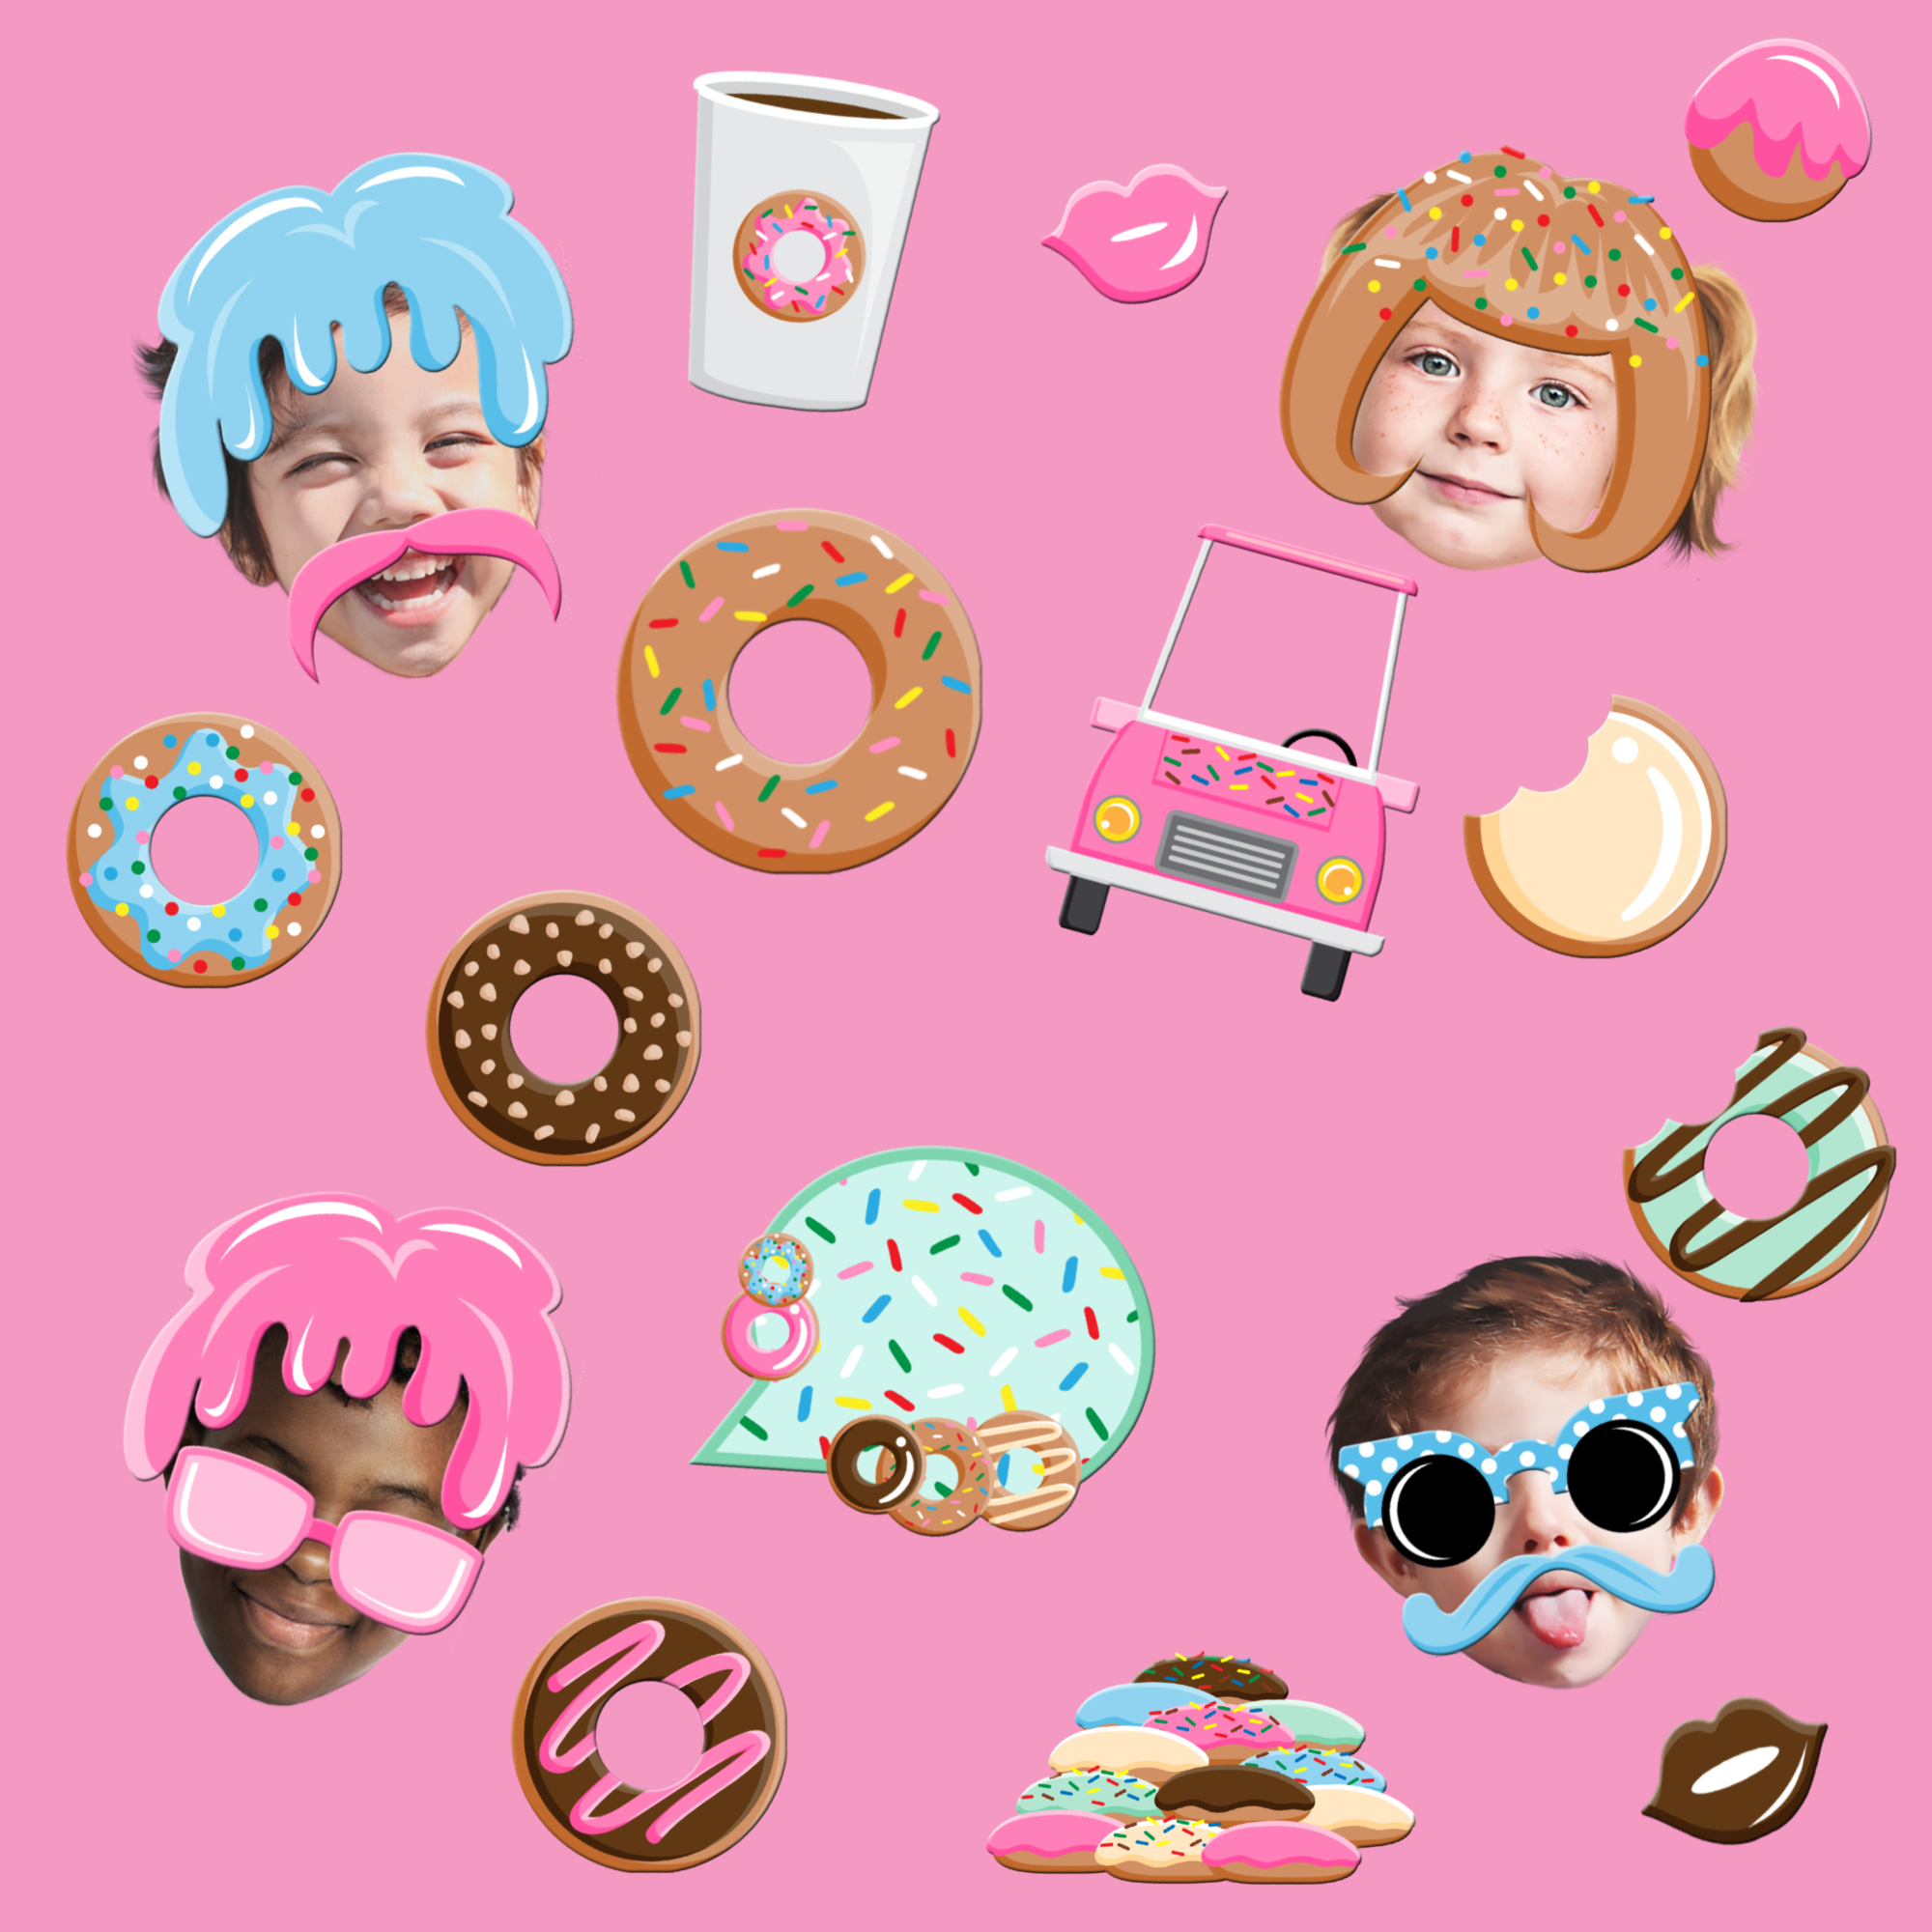 Donut Shoppe Photo Booth Props 20pcs Assembled - BirthdayGalore.com